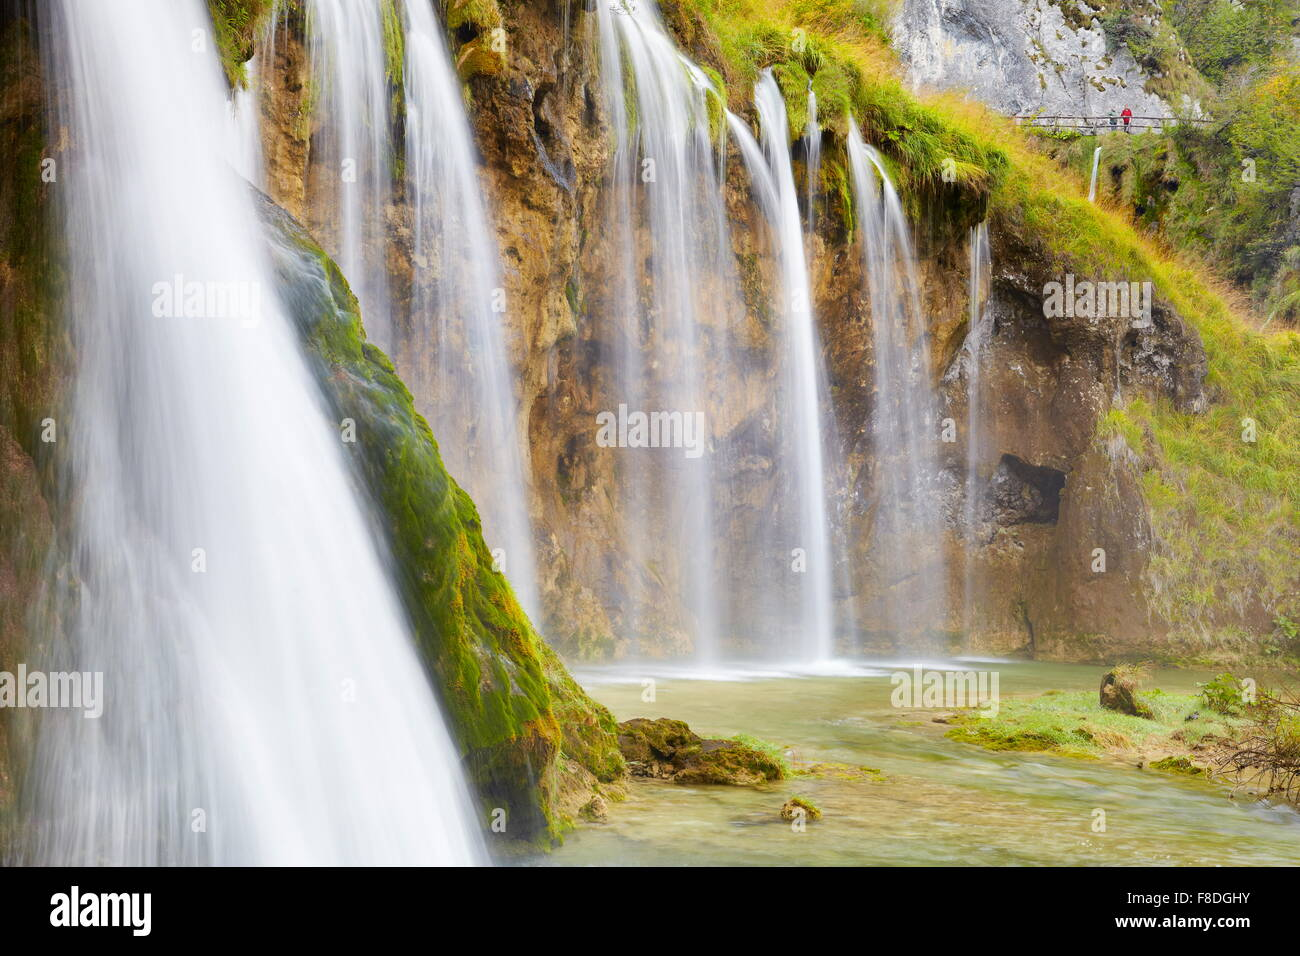 Le parc national des Lacs de Plitvice, Croatie, l'UNESCO Photo Stock